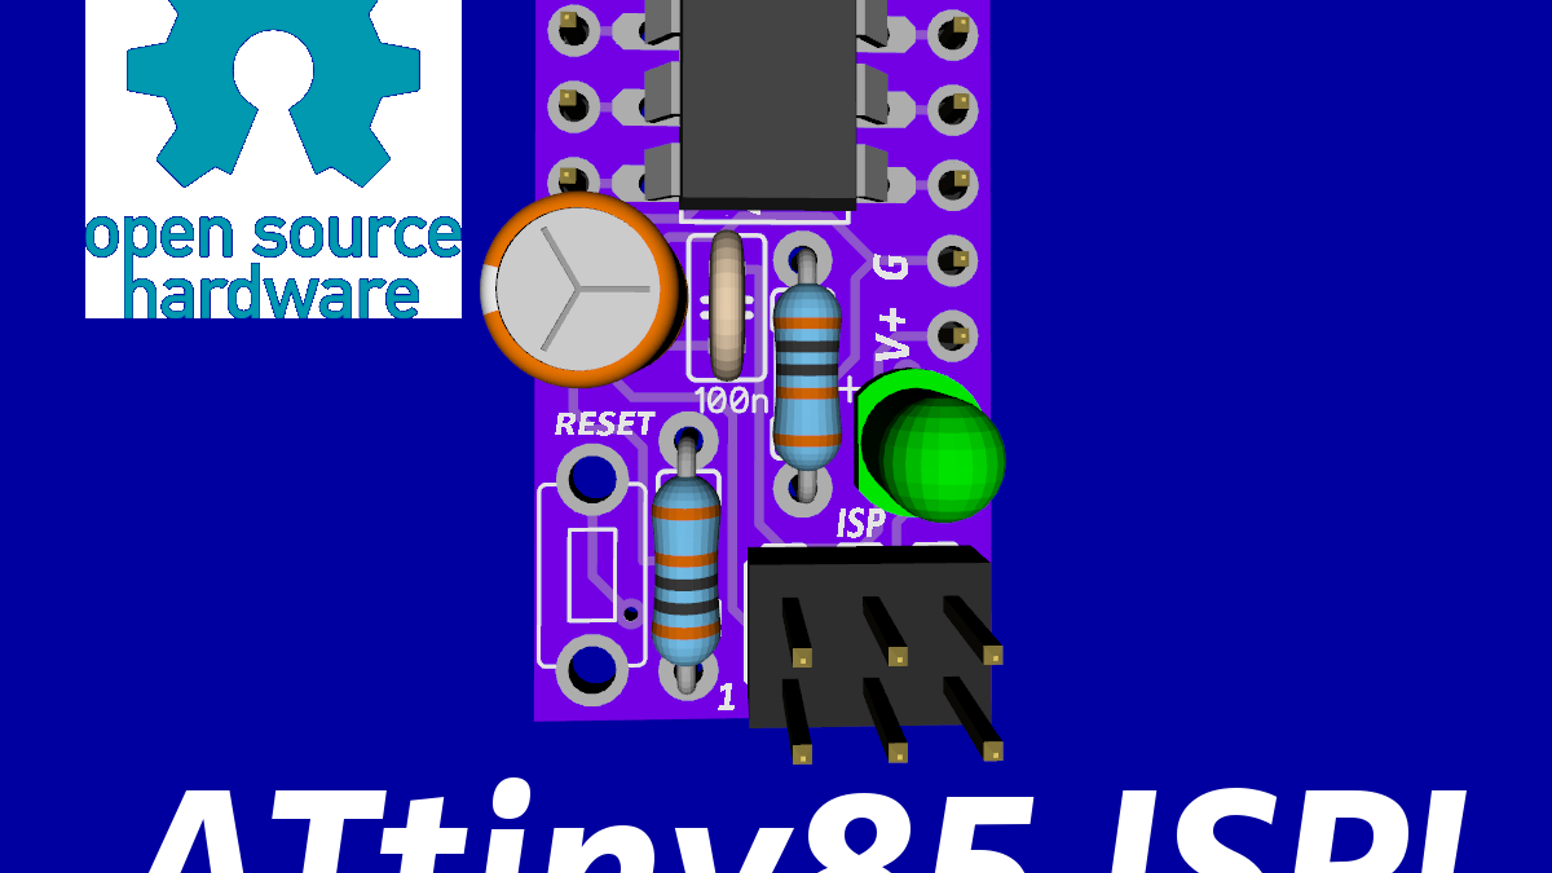 ATtiny85 ISP! Shrink your Arduino projects with ease! by Ben